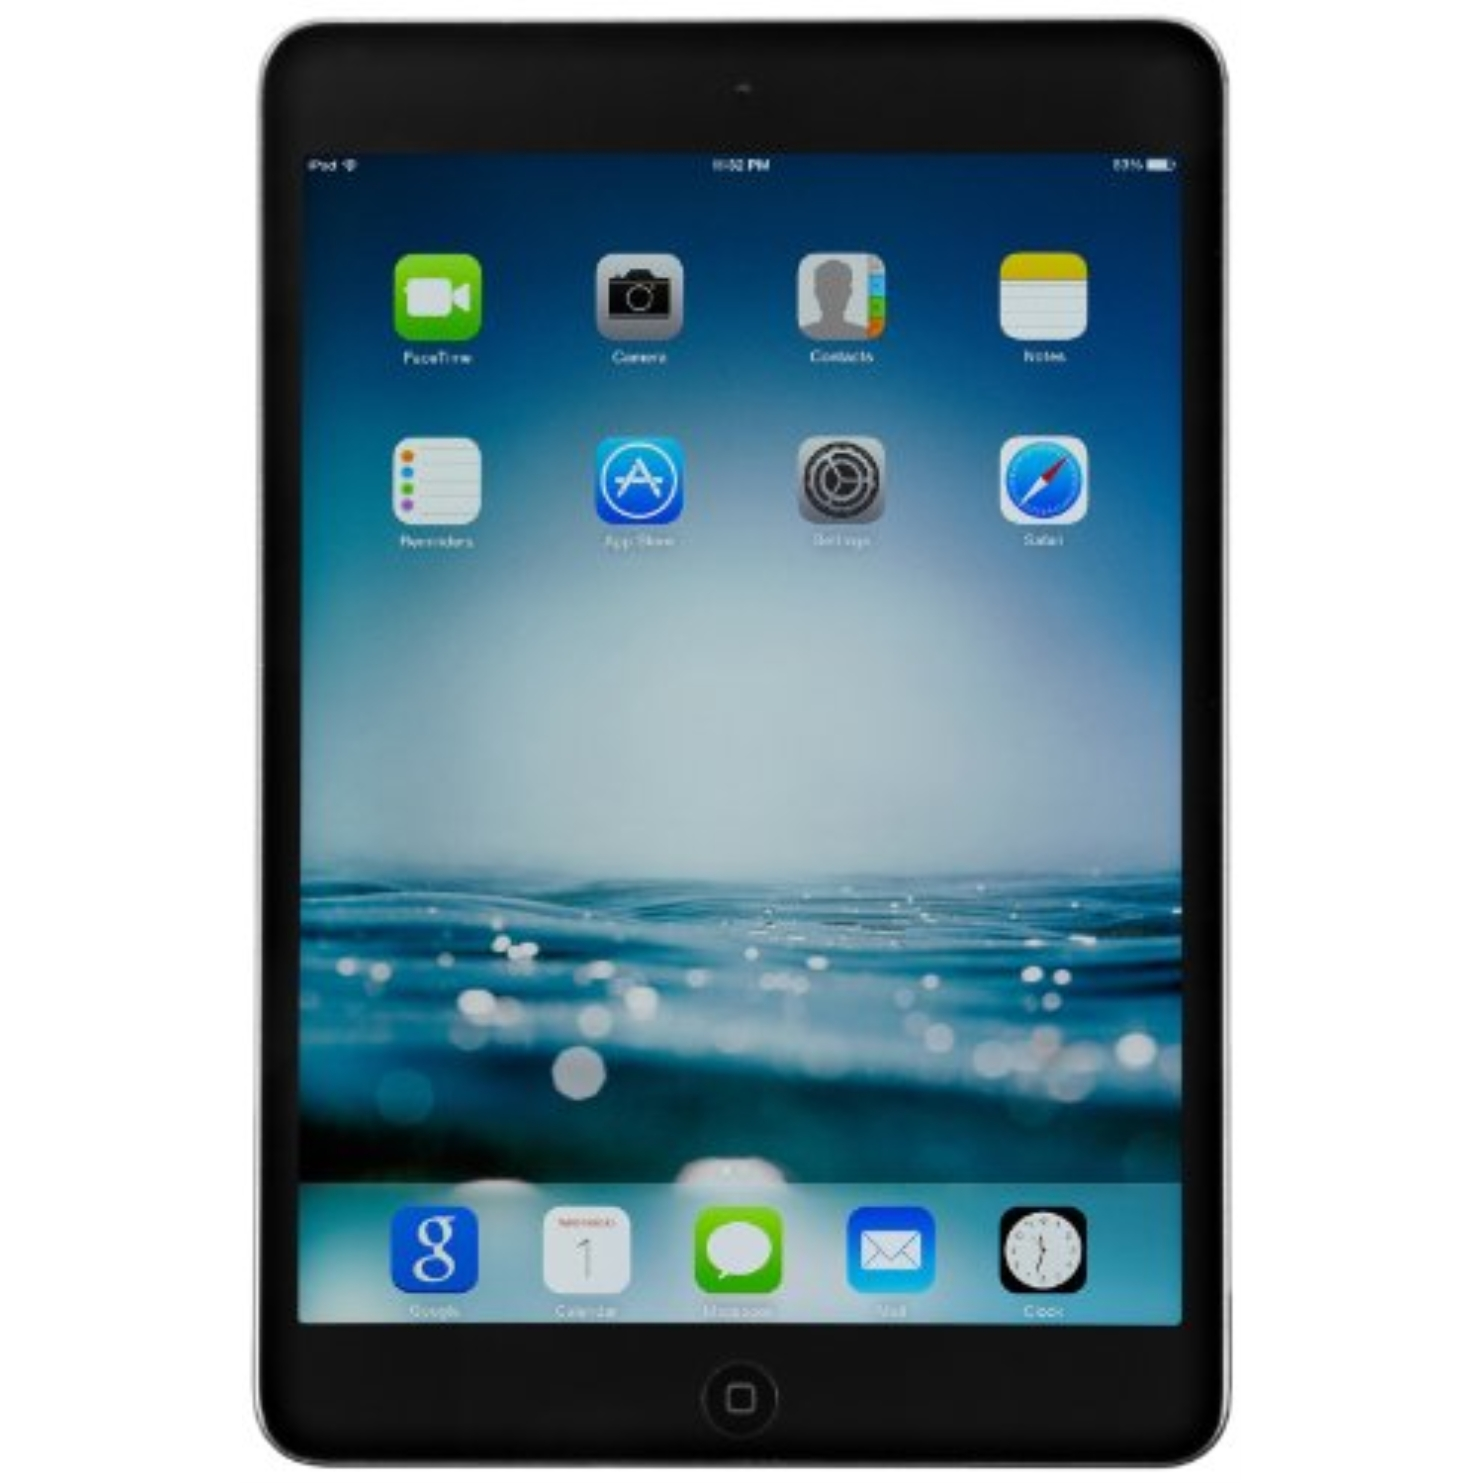 Refurbished Apple iPad Mini 2 with Retina Display ME276LL/A 16GB  Wi-Fi  Black with Space Gray